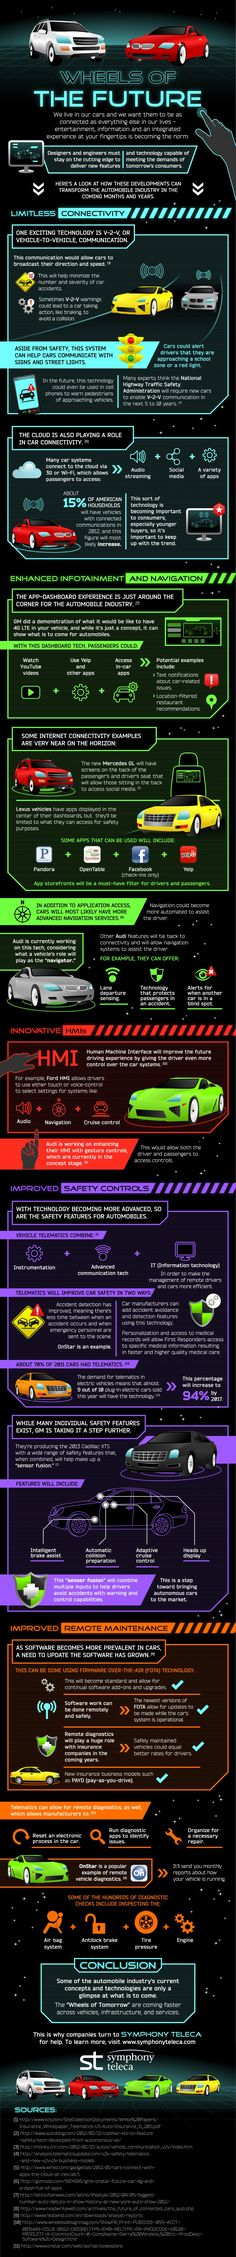 Really ugly infographic but some good information on technology and cars, to go with the Indy 500 infographic pinned earlier.